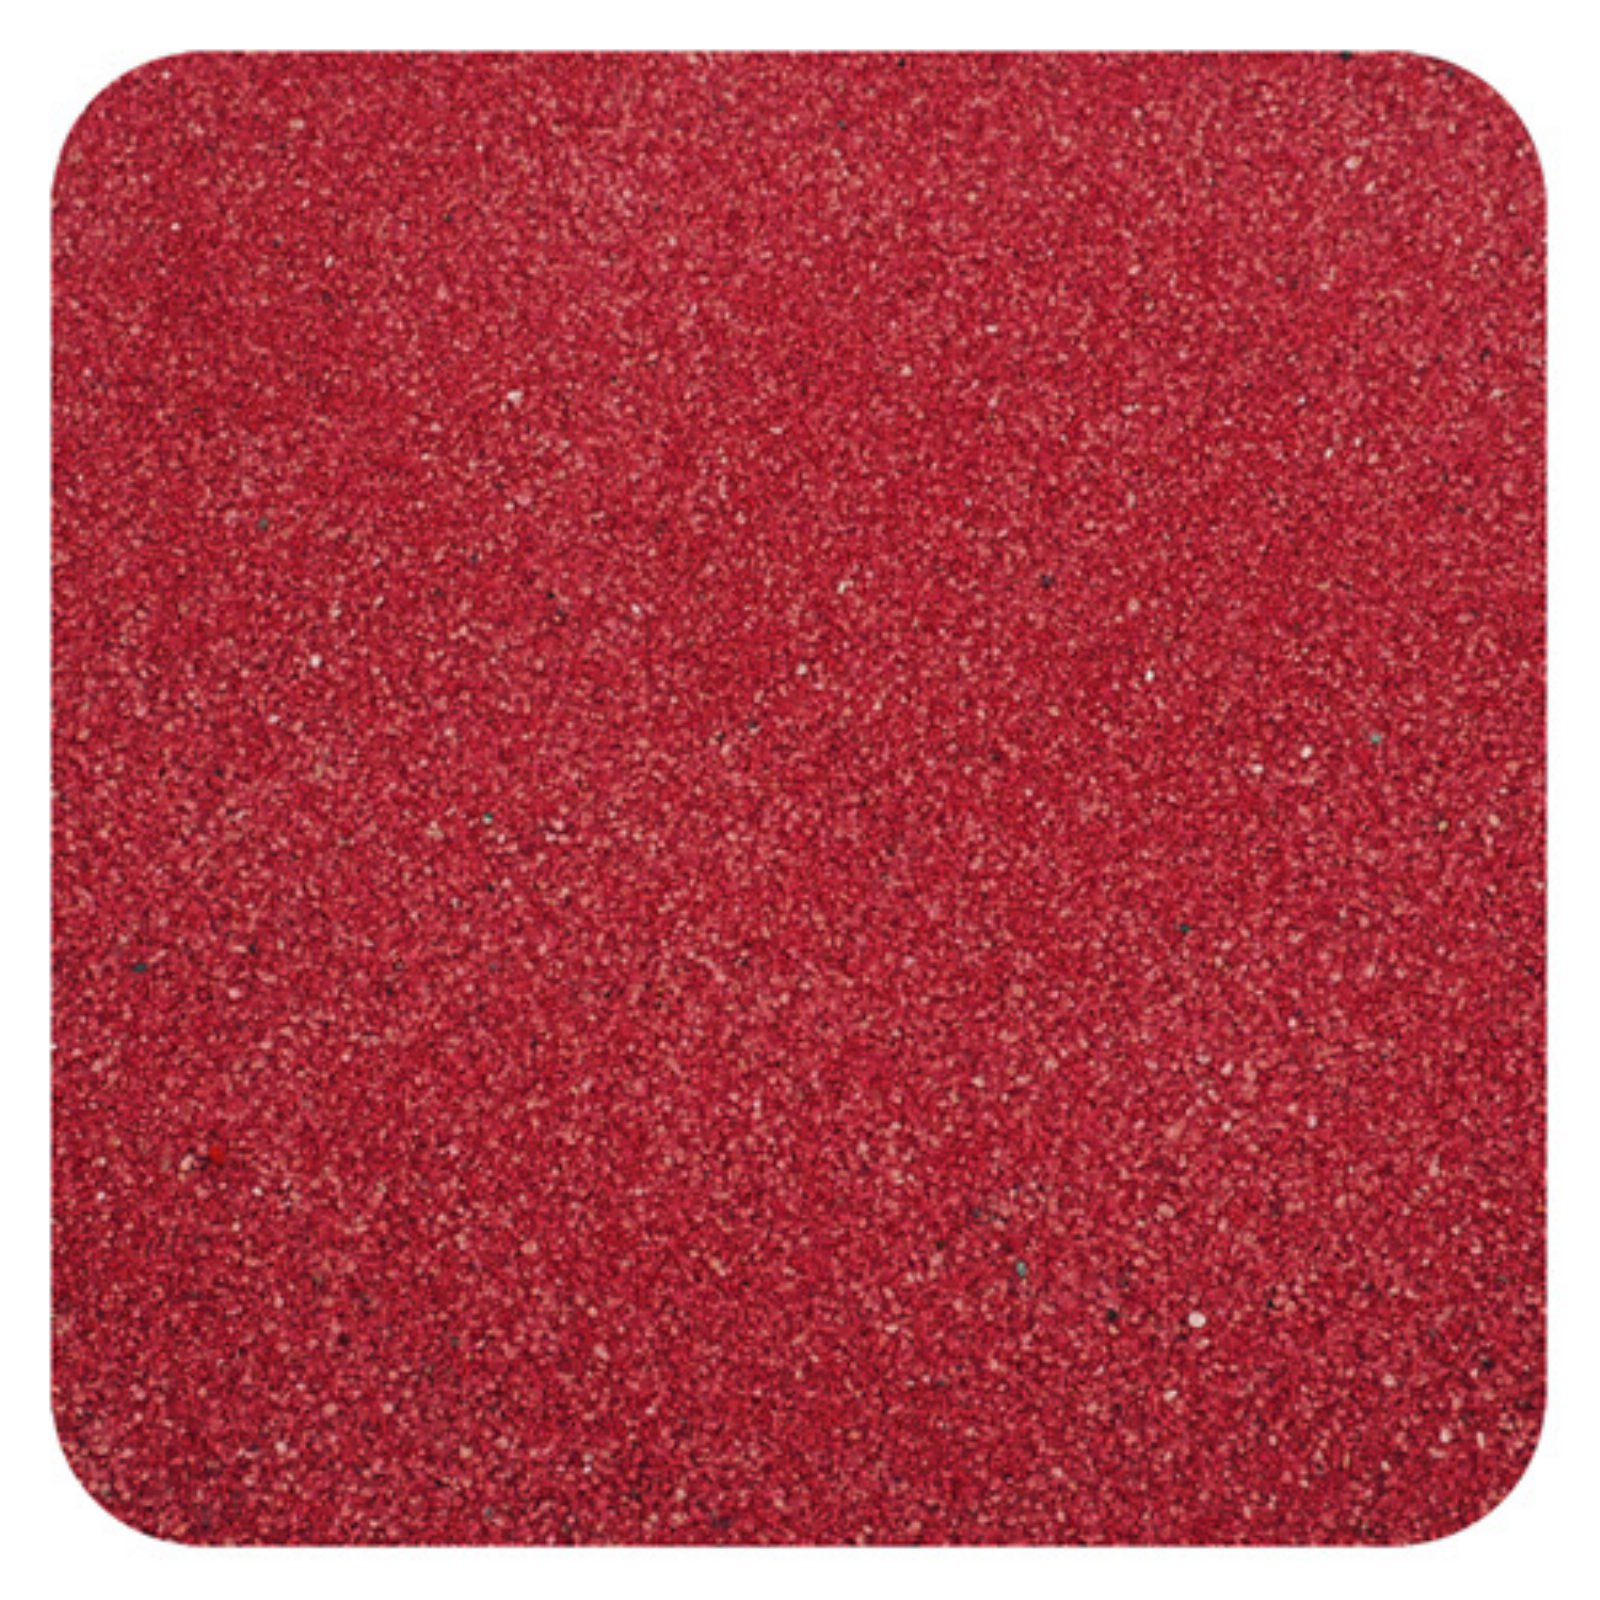 Sandtastik Colored Play Sand-10 lbs.